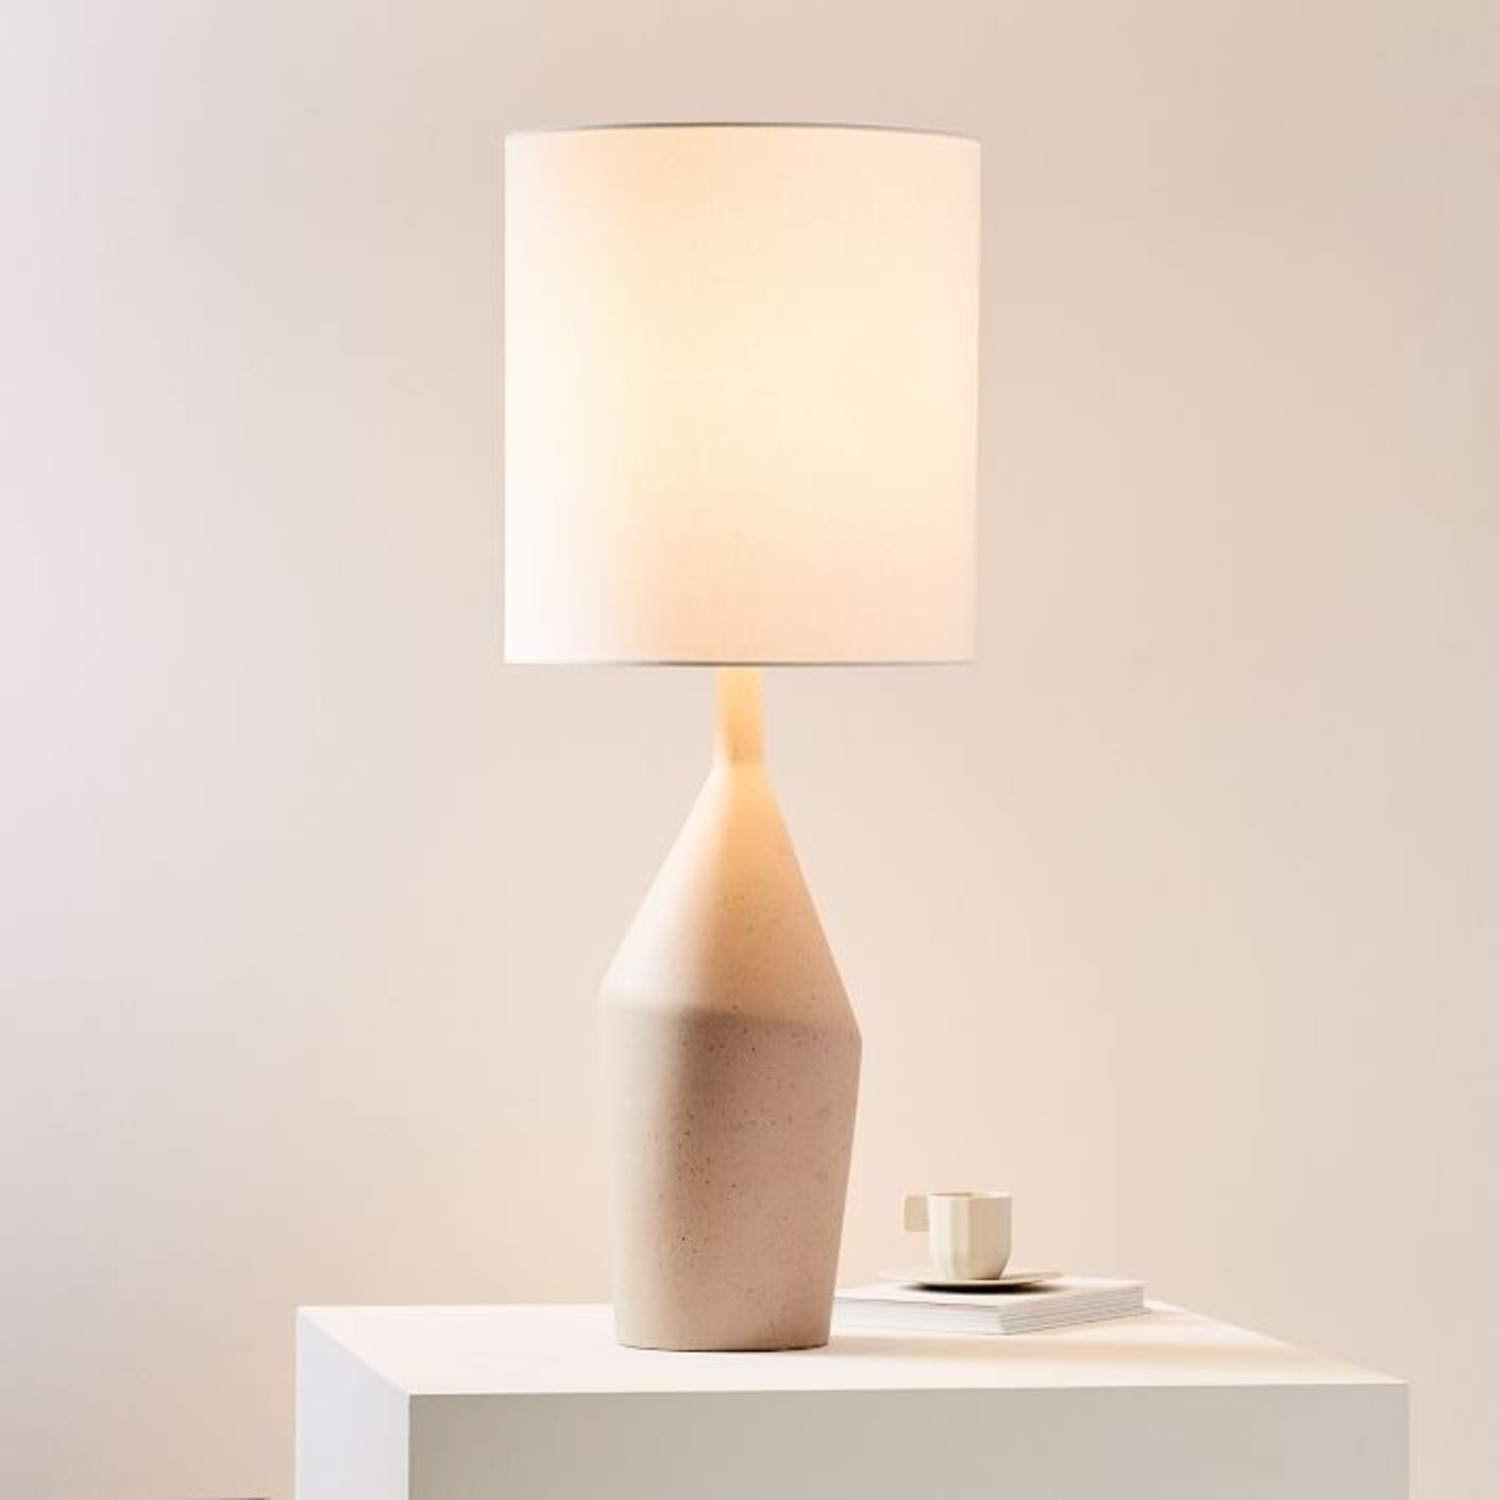 West Elm Asymmetry Ceramic Table Lamp - image-2